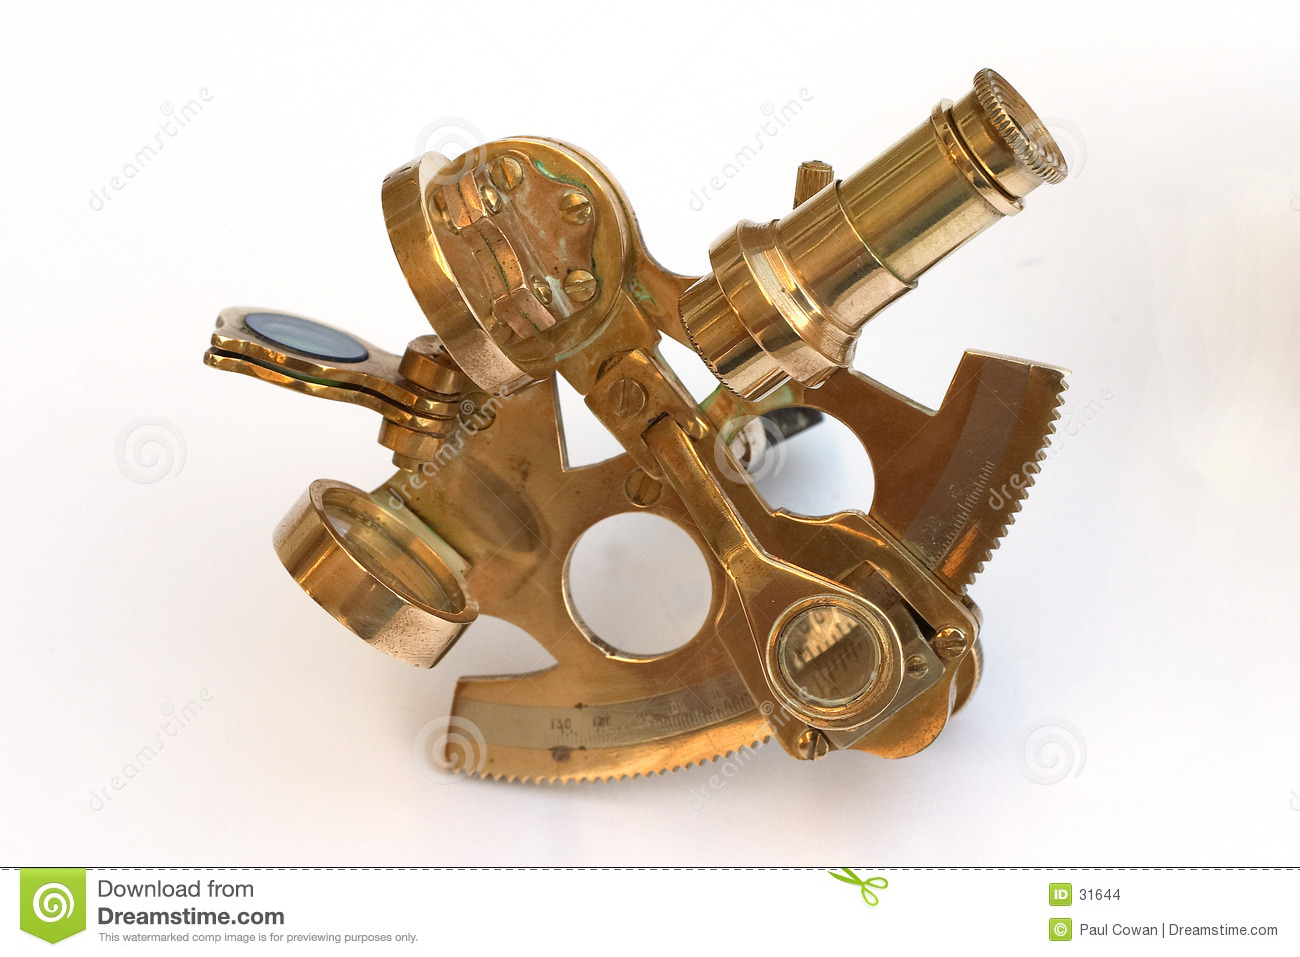 Small sextant